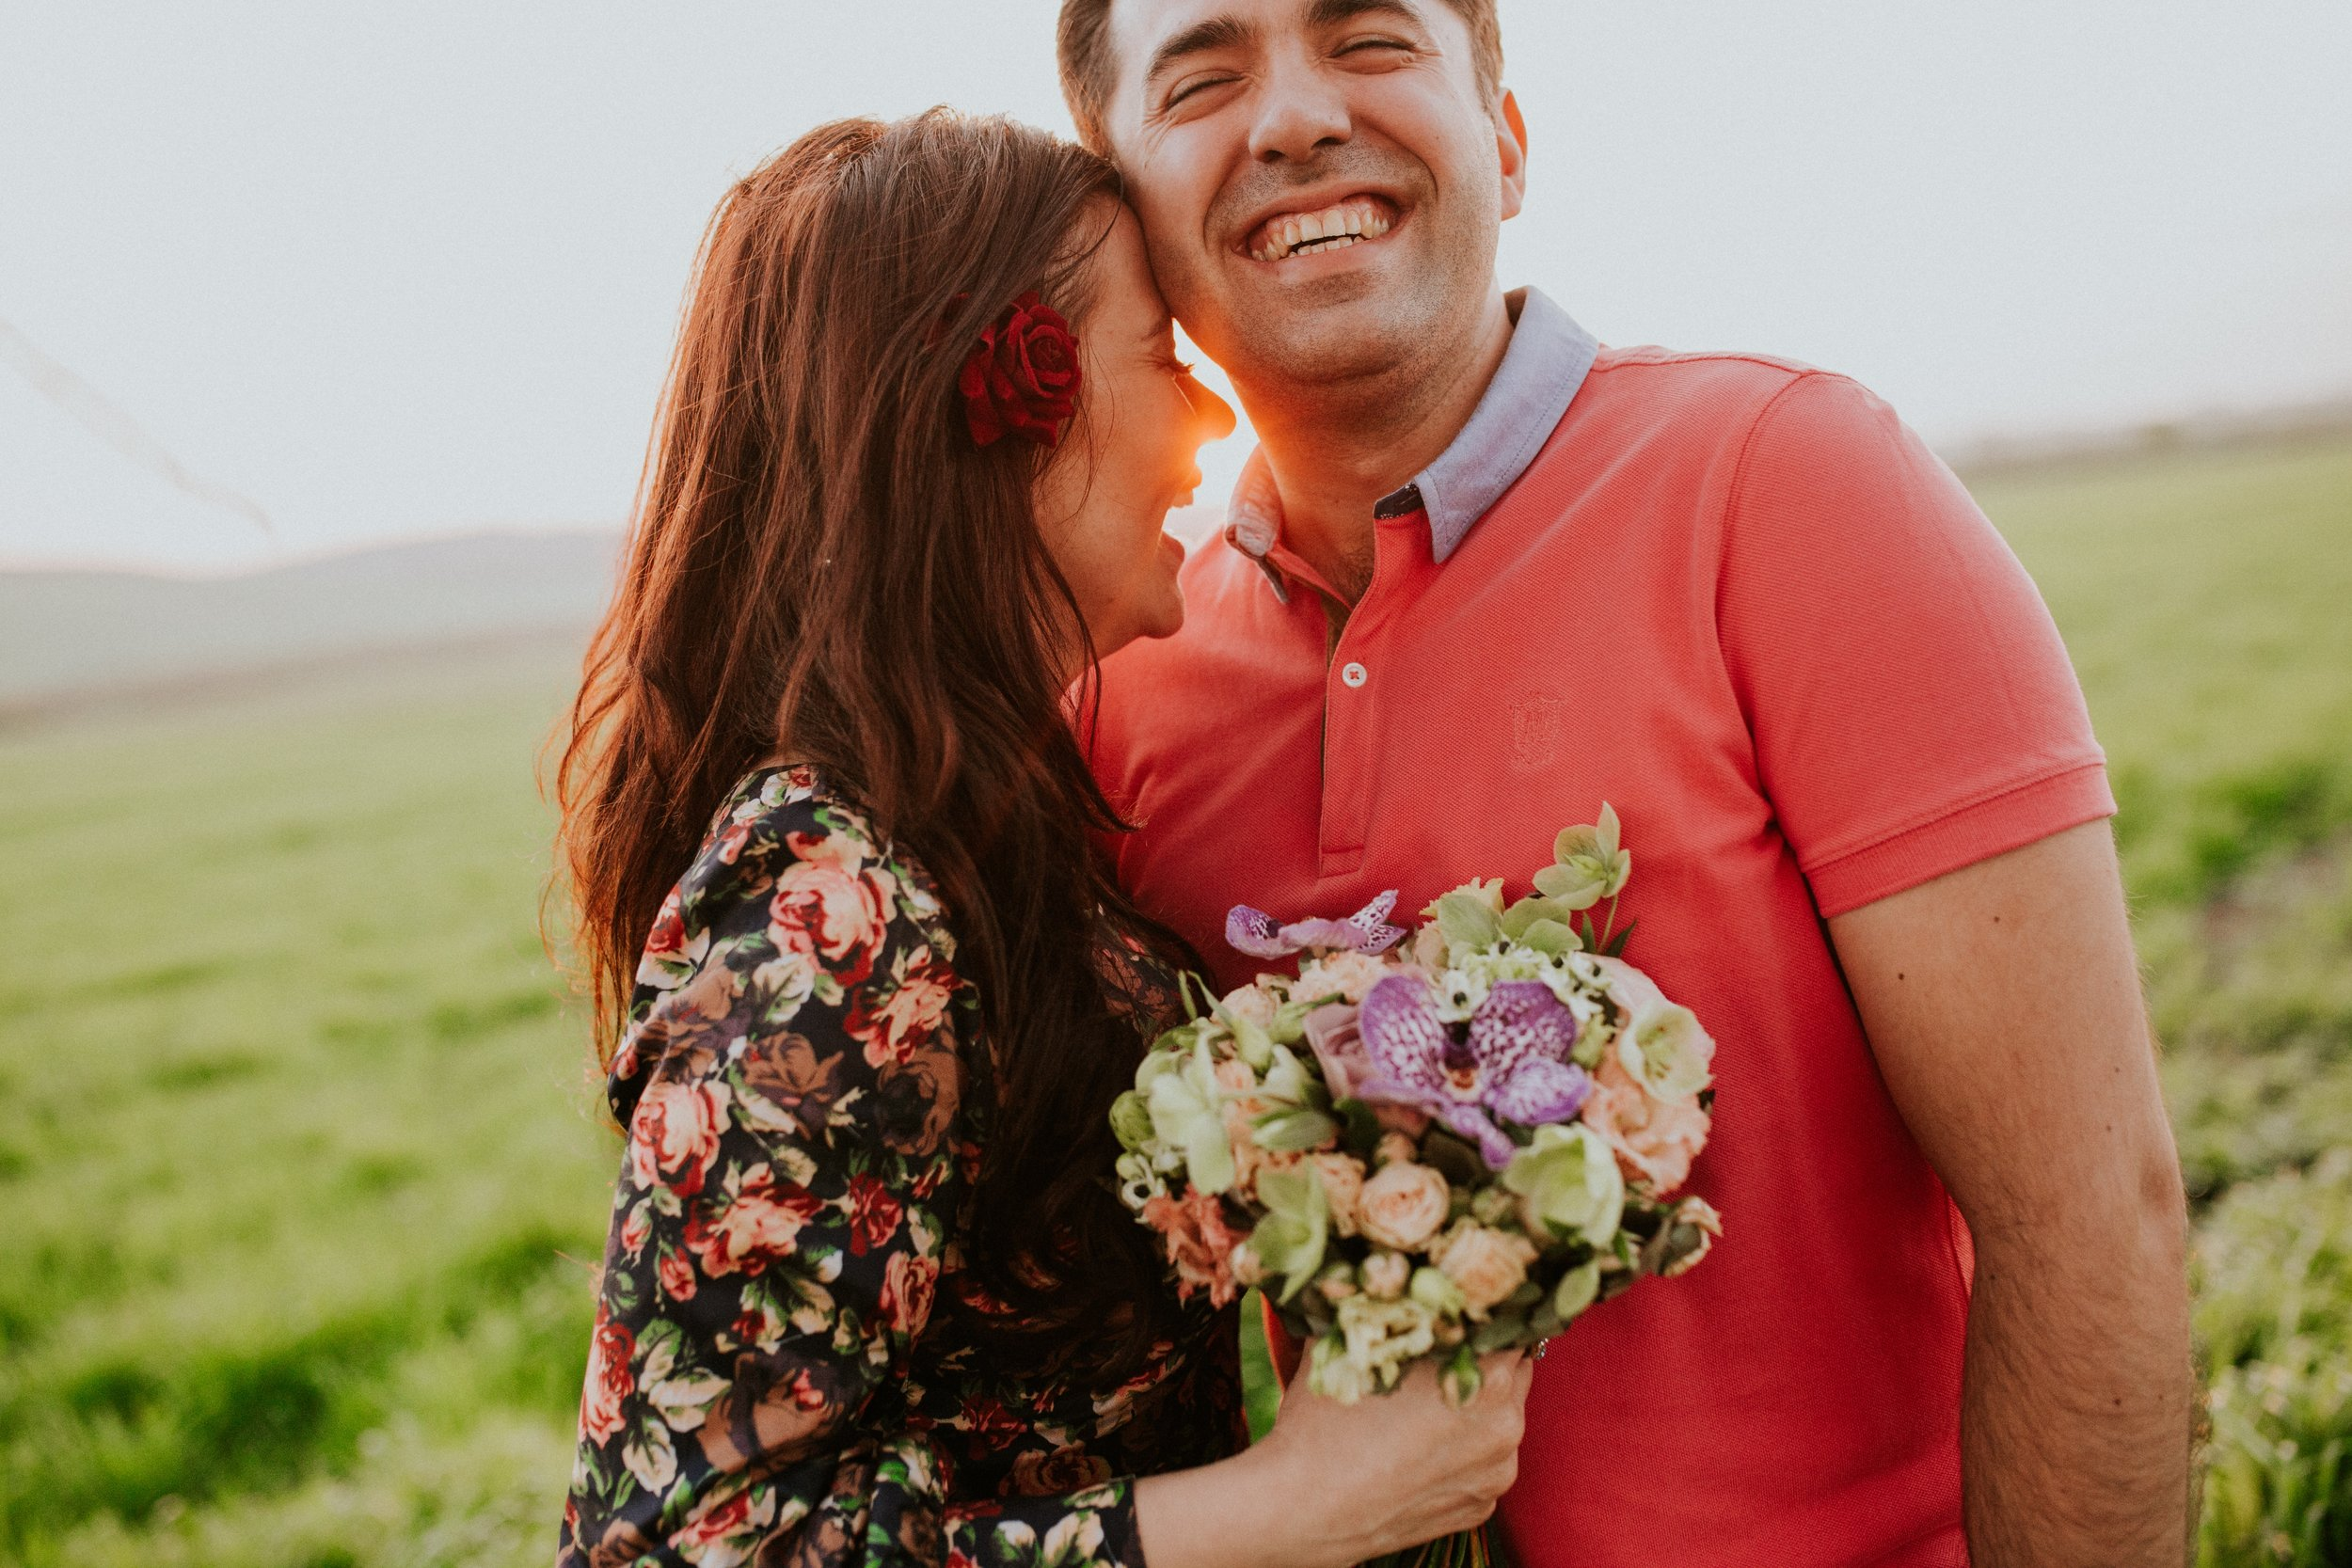 Rejuvenate and restore your sexual connection with sex therapy at Tri-Valley Relationship Therapy in the East Bay.